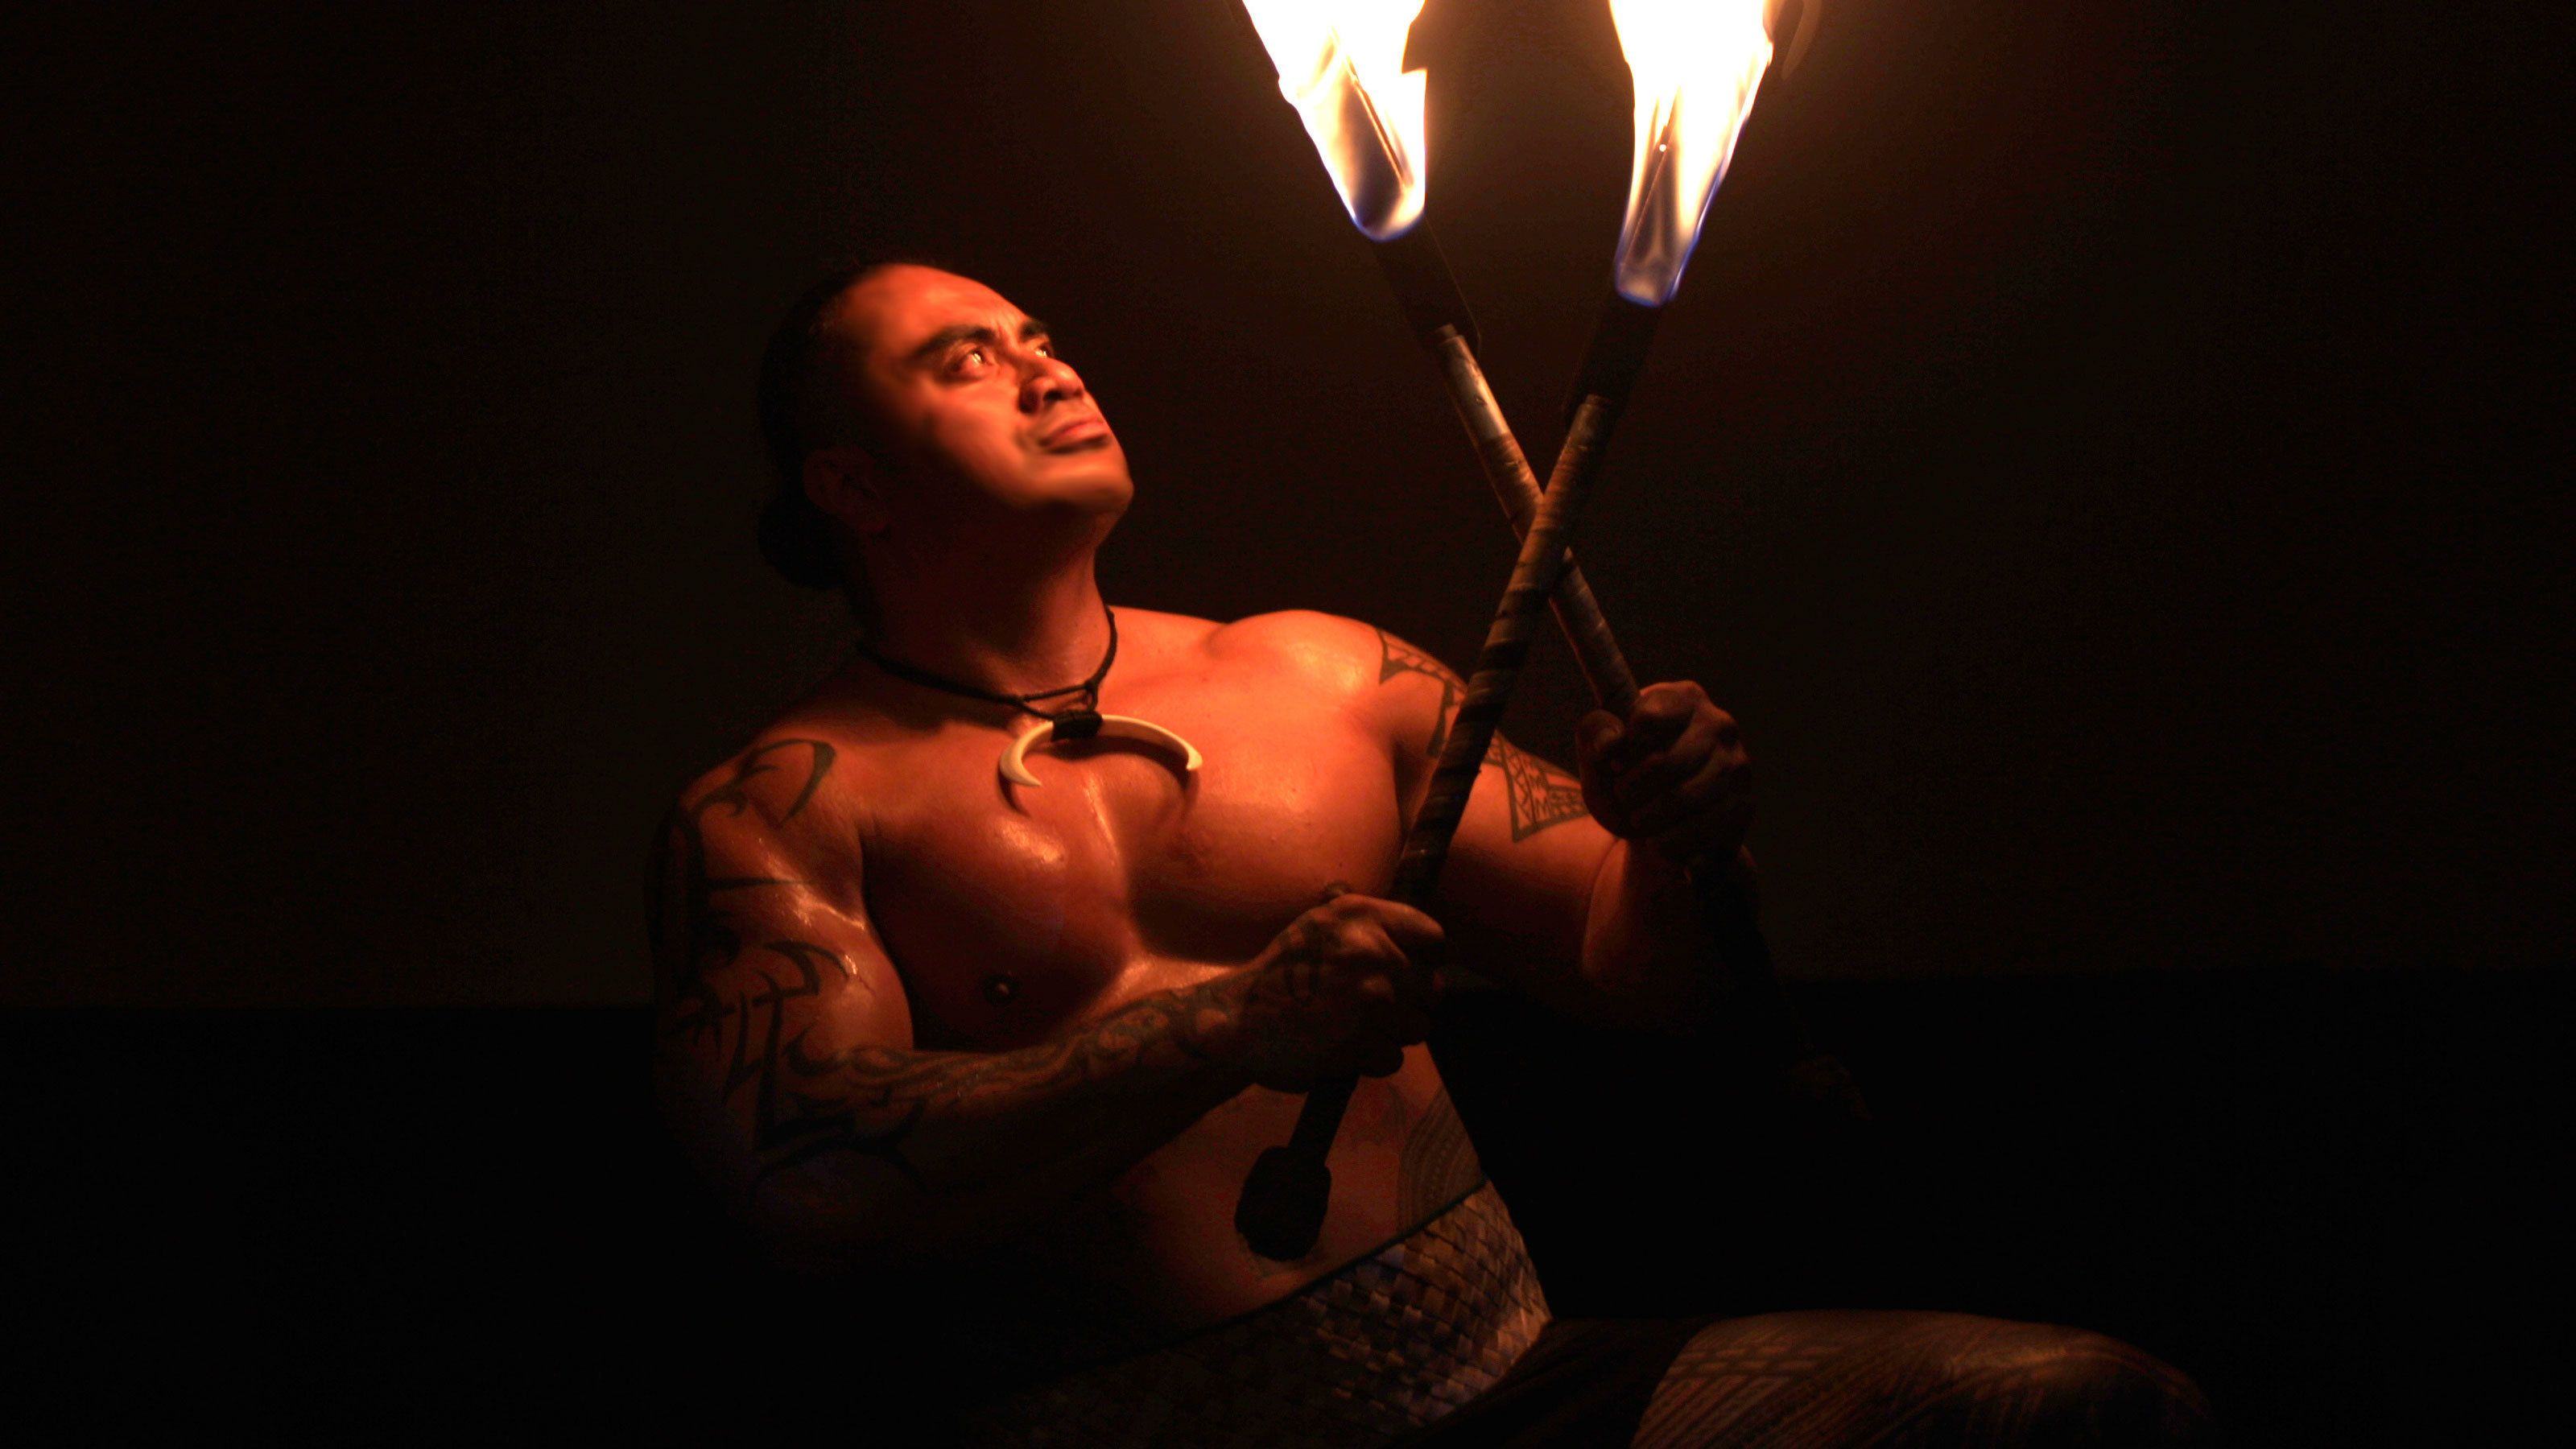 Guy in Te Au Moana Luau performance with fire in Maui